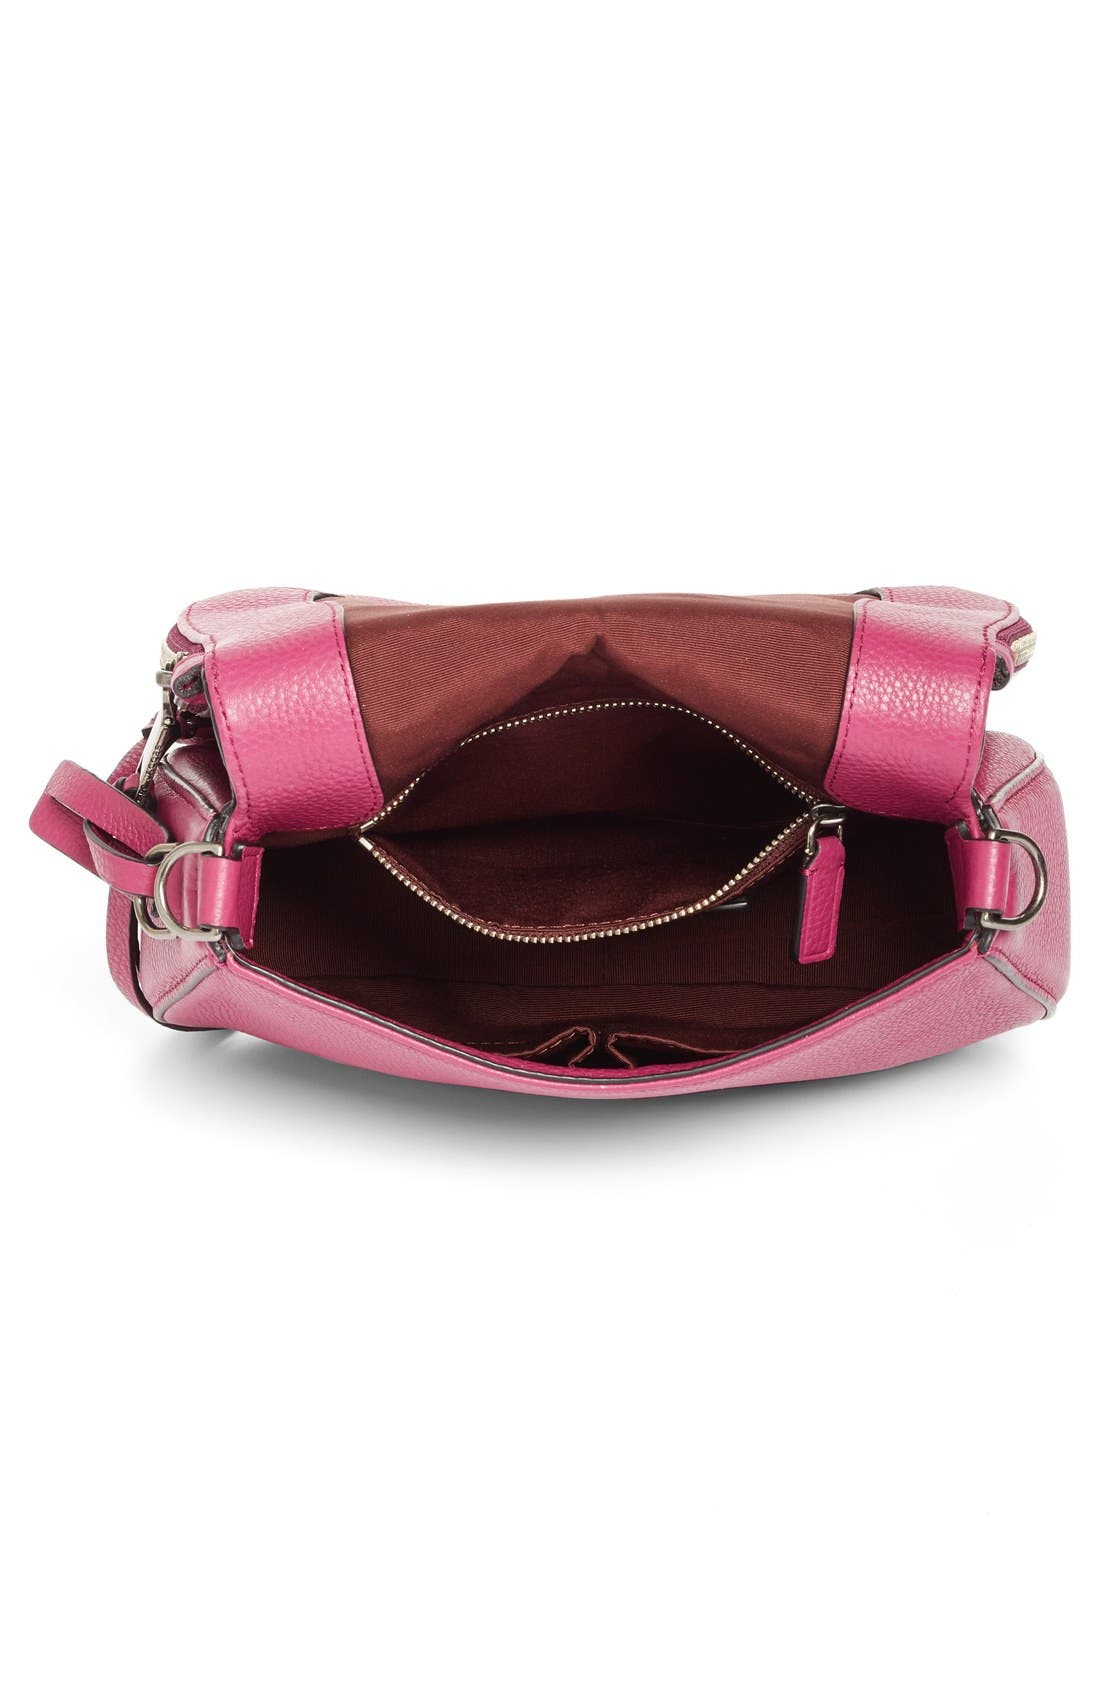 Small Recruit Nomad Pebbled Leather Crossbody Bag,                             Alternate thumbnail 95, color,